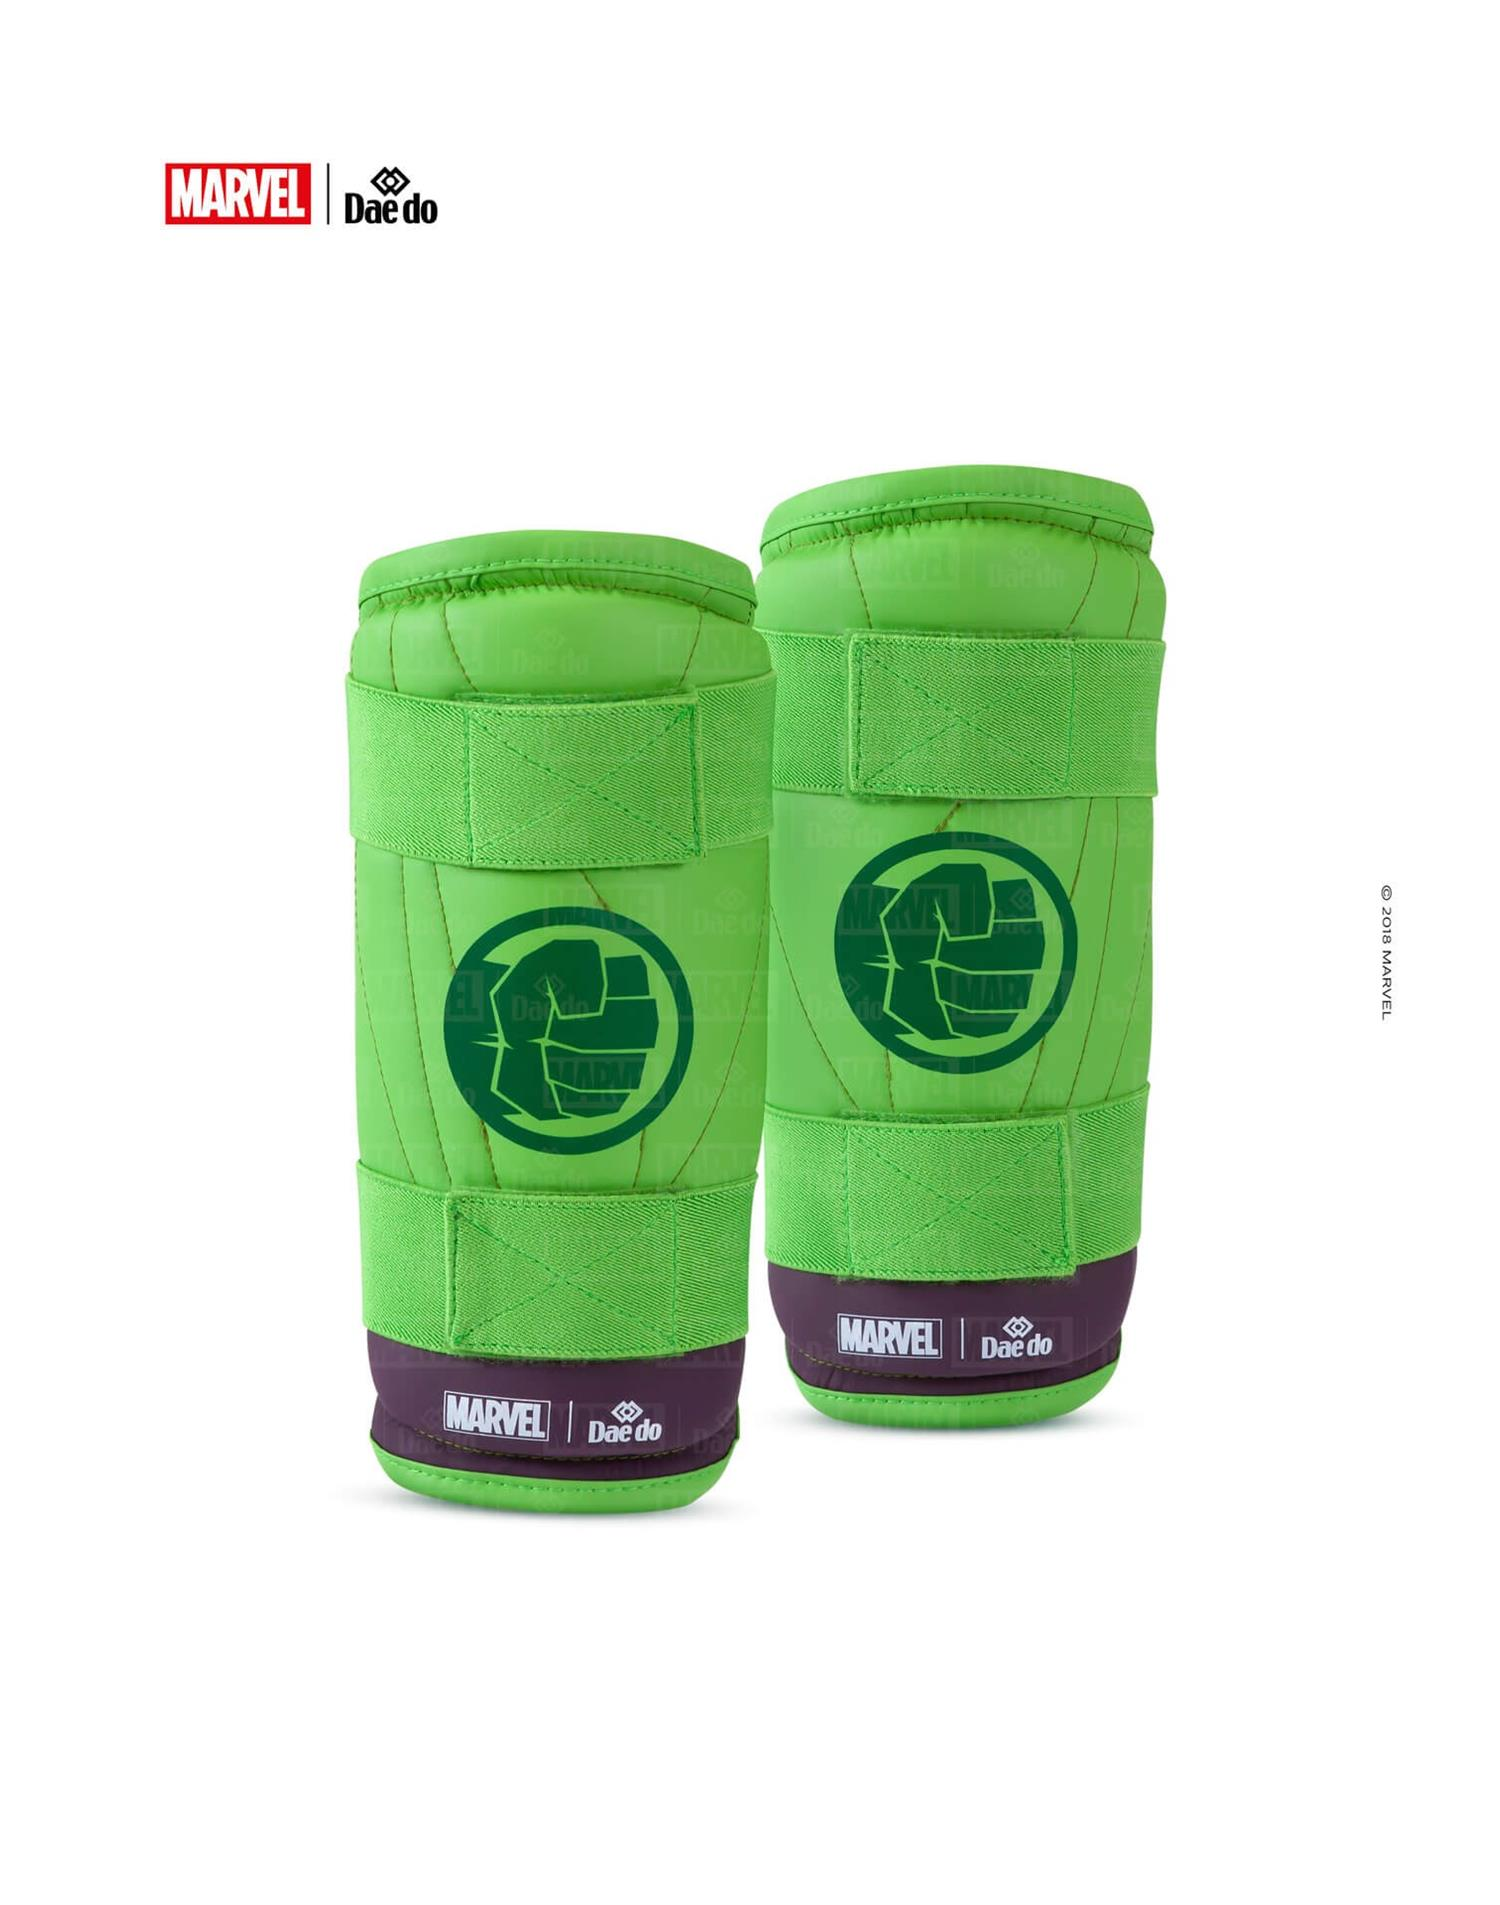 Dae Do Parabraccia Marvel Hulk (3 - M - VERDE)